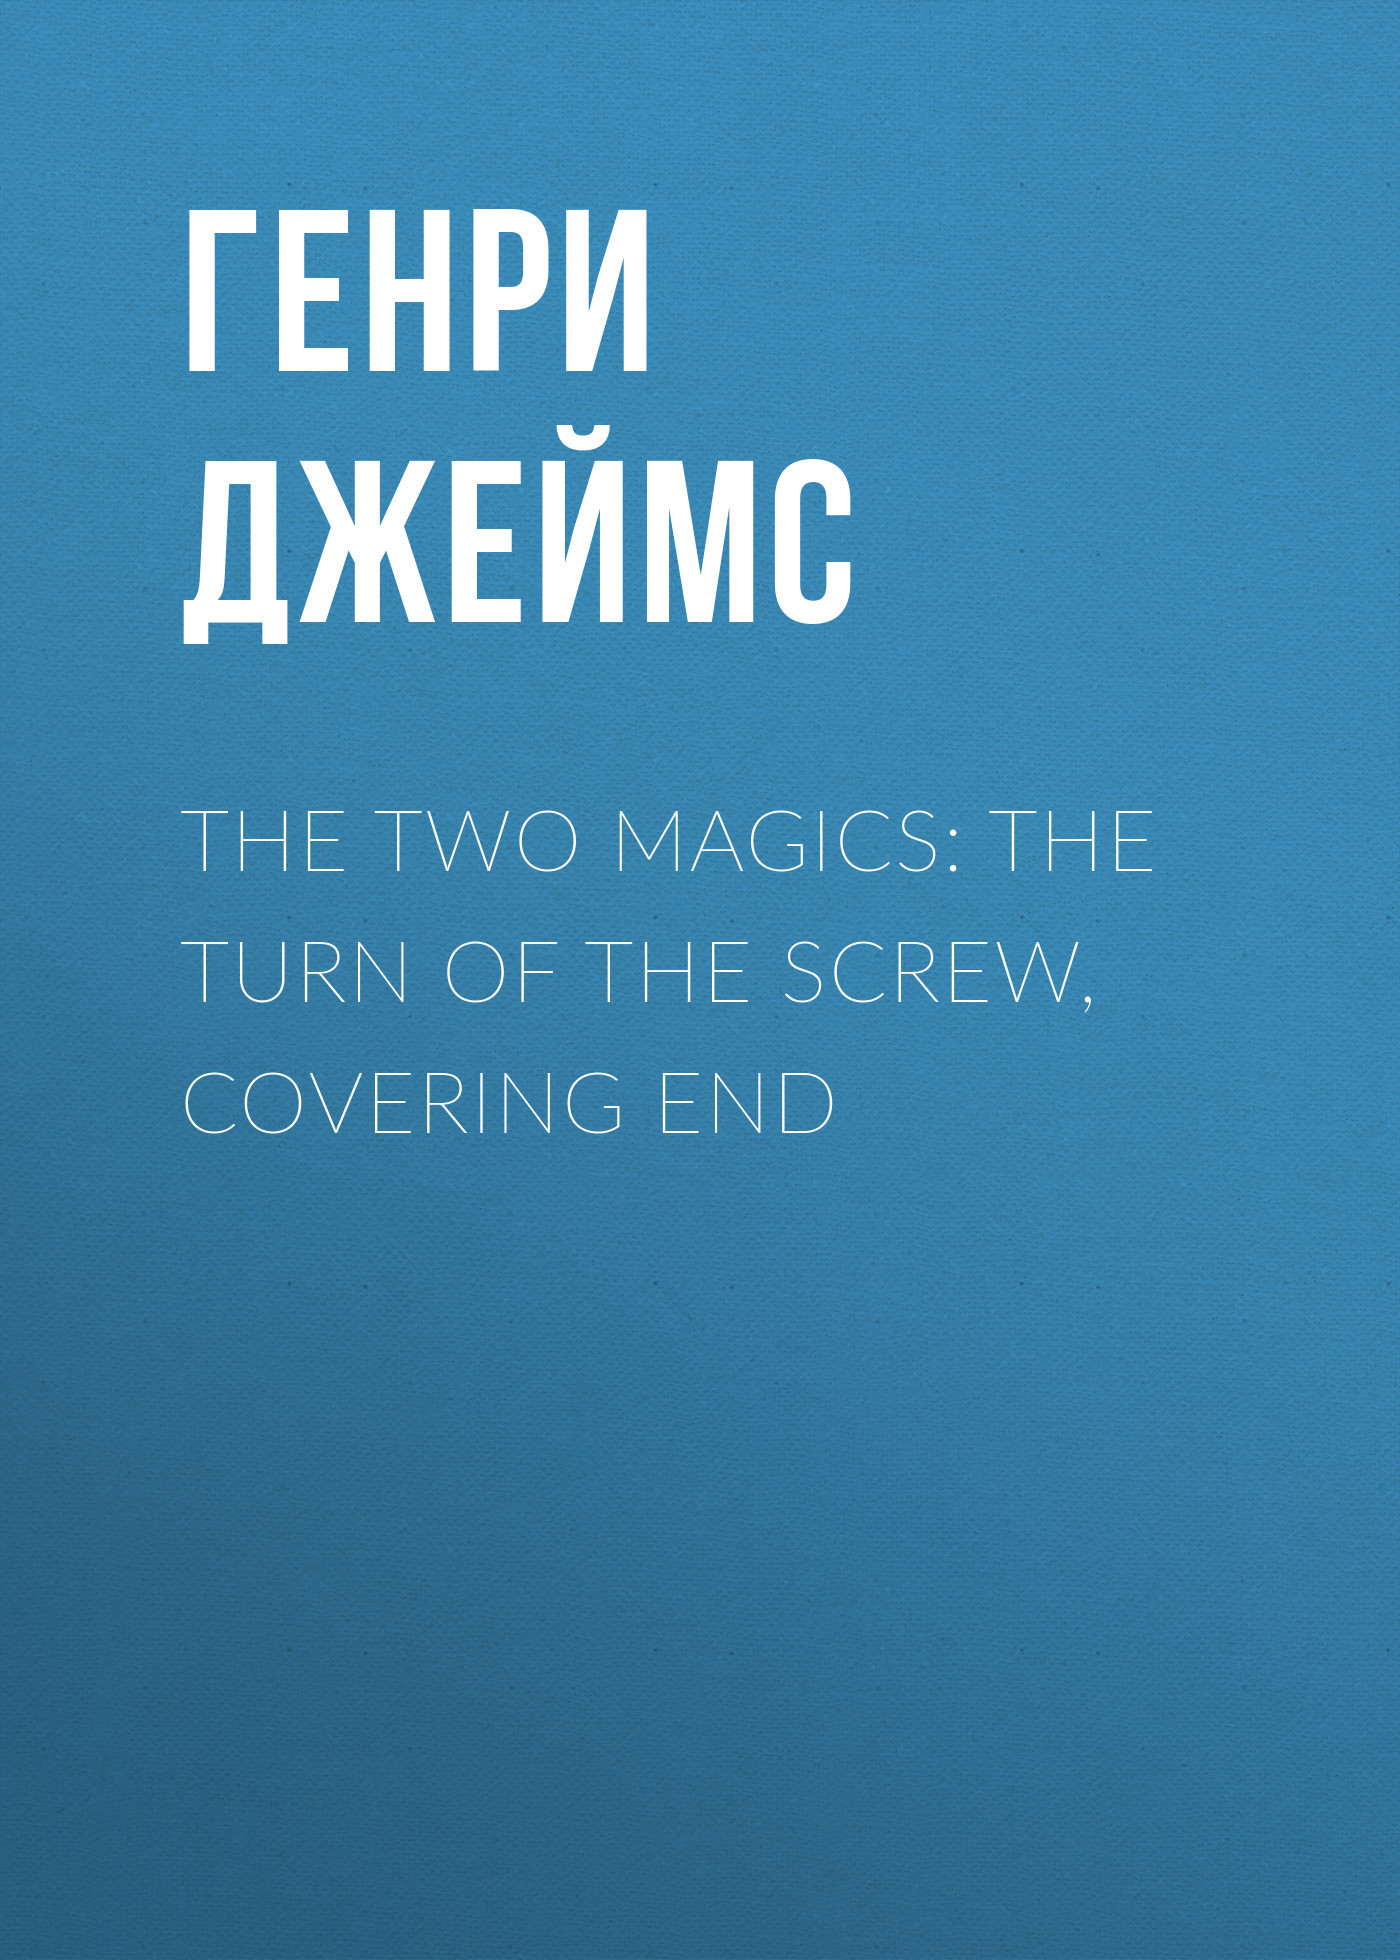 Генри Джеймс The Two Magics: The Turn of the Screw, Covering End sitemap html page 7 page 8 page 4